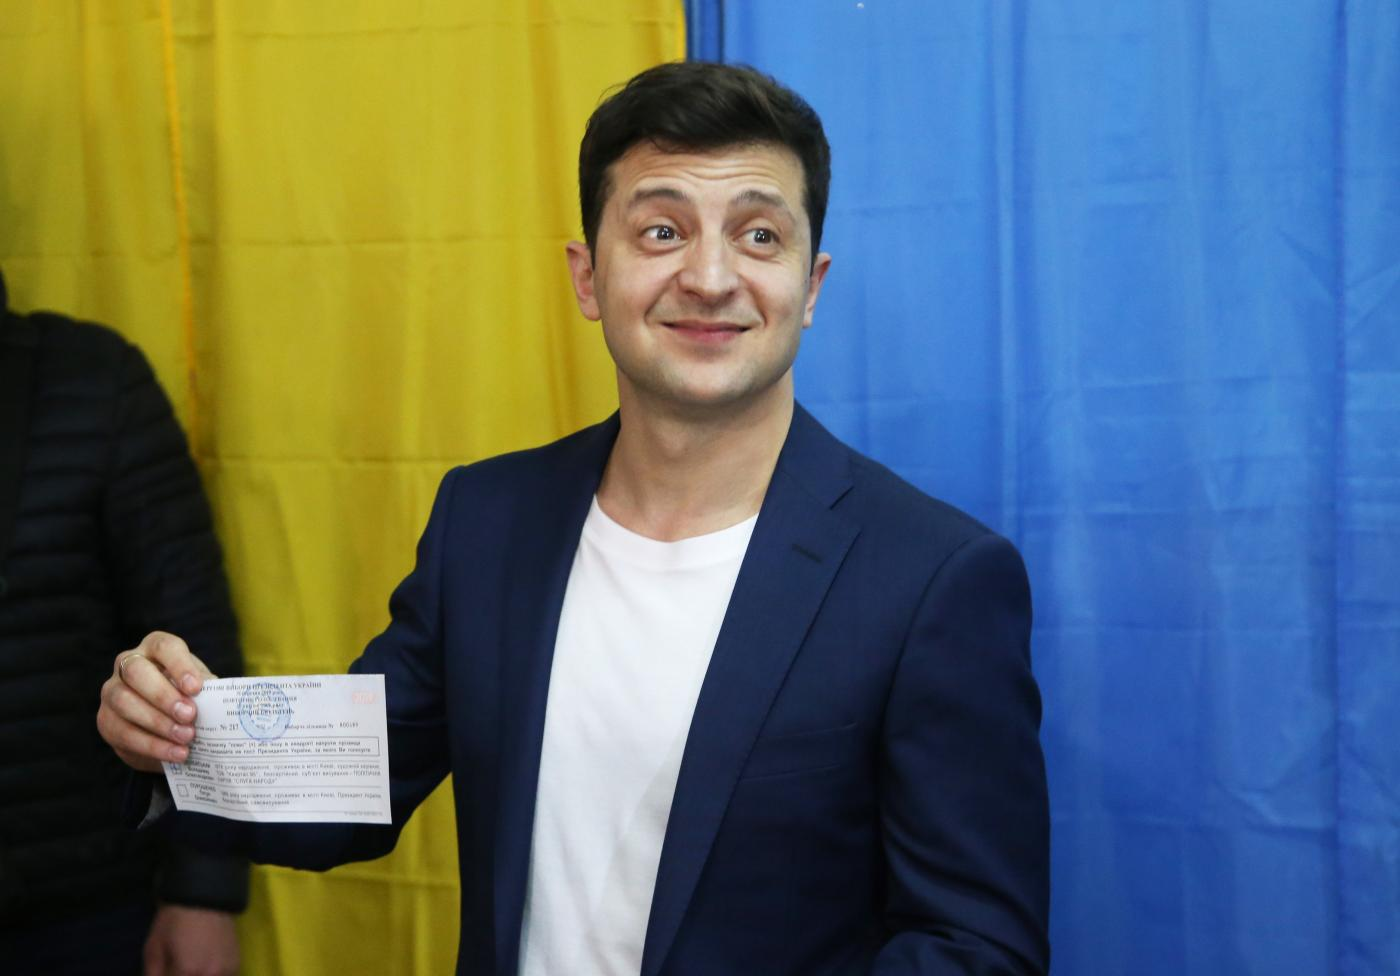 KIEV, April 21, 2019 (Xinhua) -- Candidate actor Volodymyr Zelensky casts his ballot at a polling station in Kiev, Ukrain, April 21, 2019. Ukraine's presidential candidates, incumbent President Petro Poroshenko and actor Volodymyr Zelensky, on Sunday cast their ballots in the second round of the country's presidential election. (Xinhua/Sergey/IANS) by .